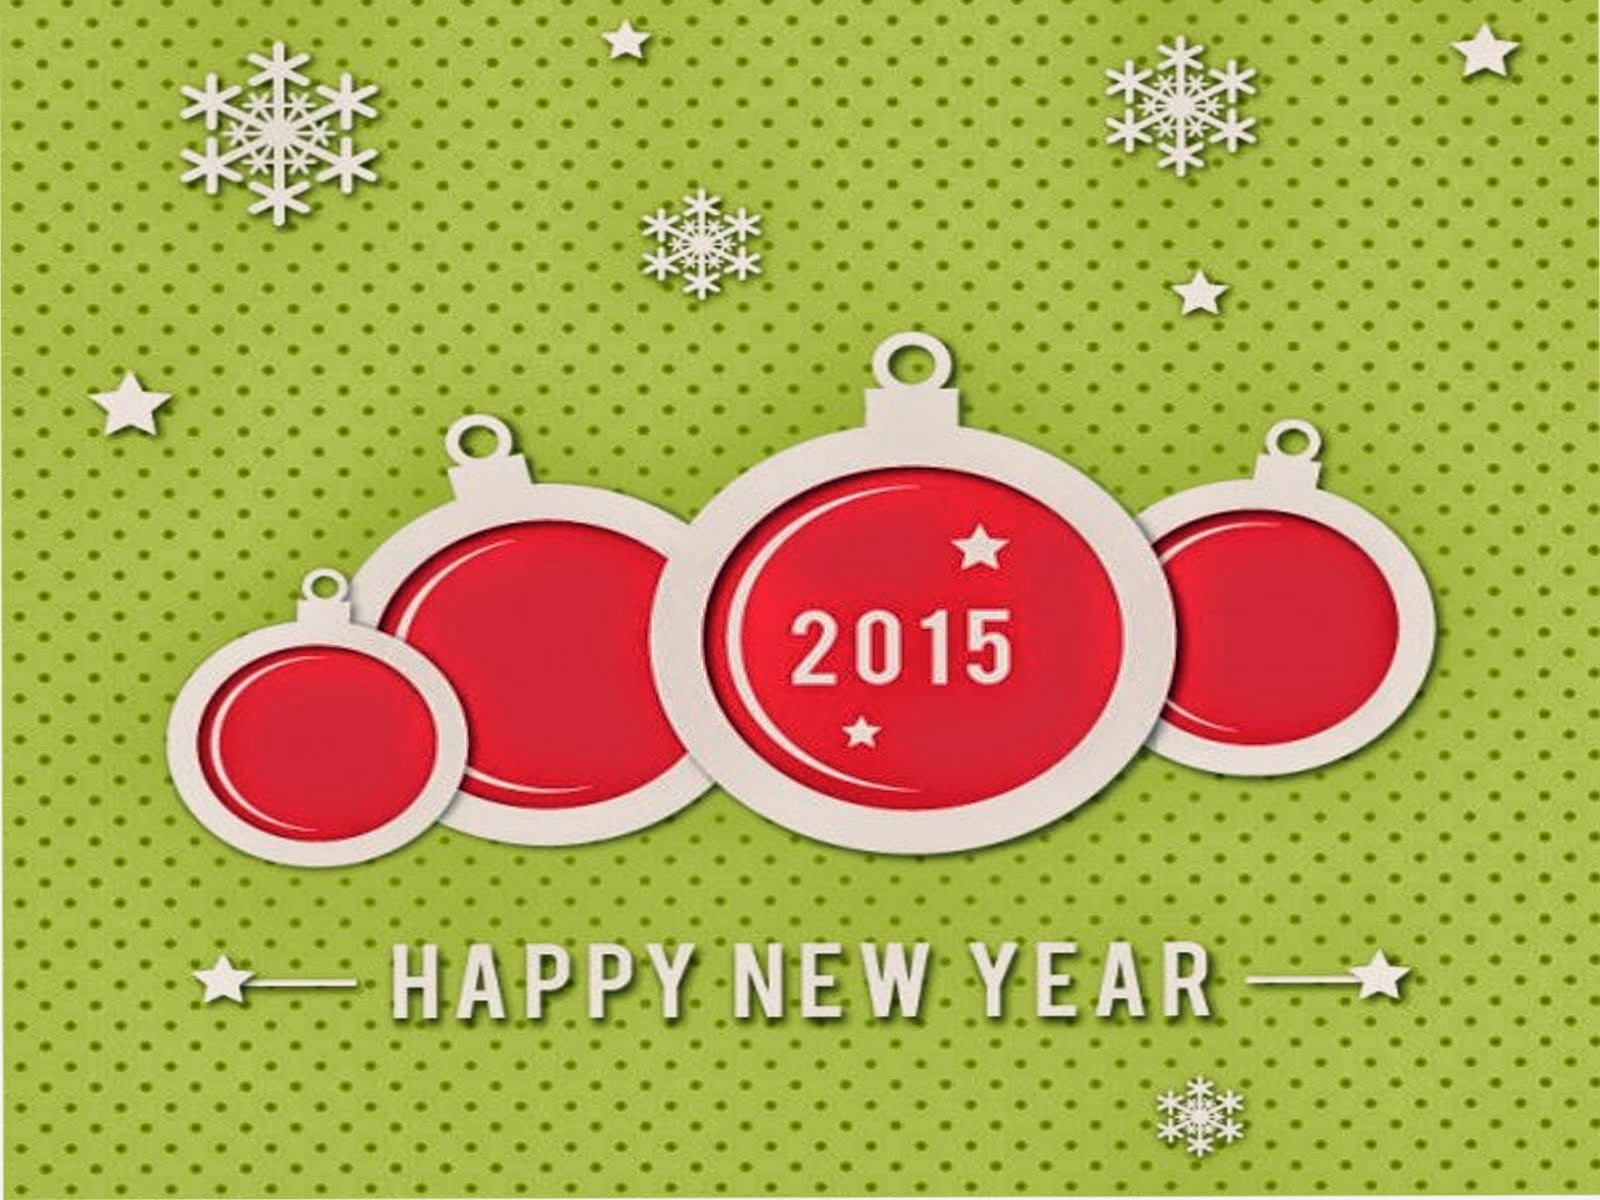 free download happy new year wallpaper 2015